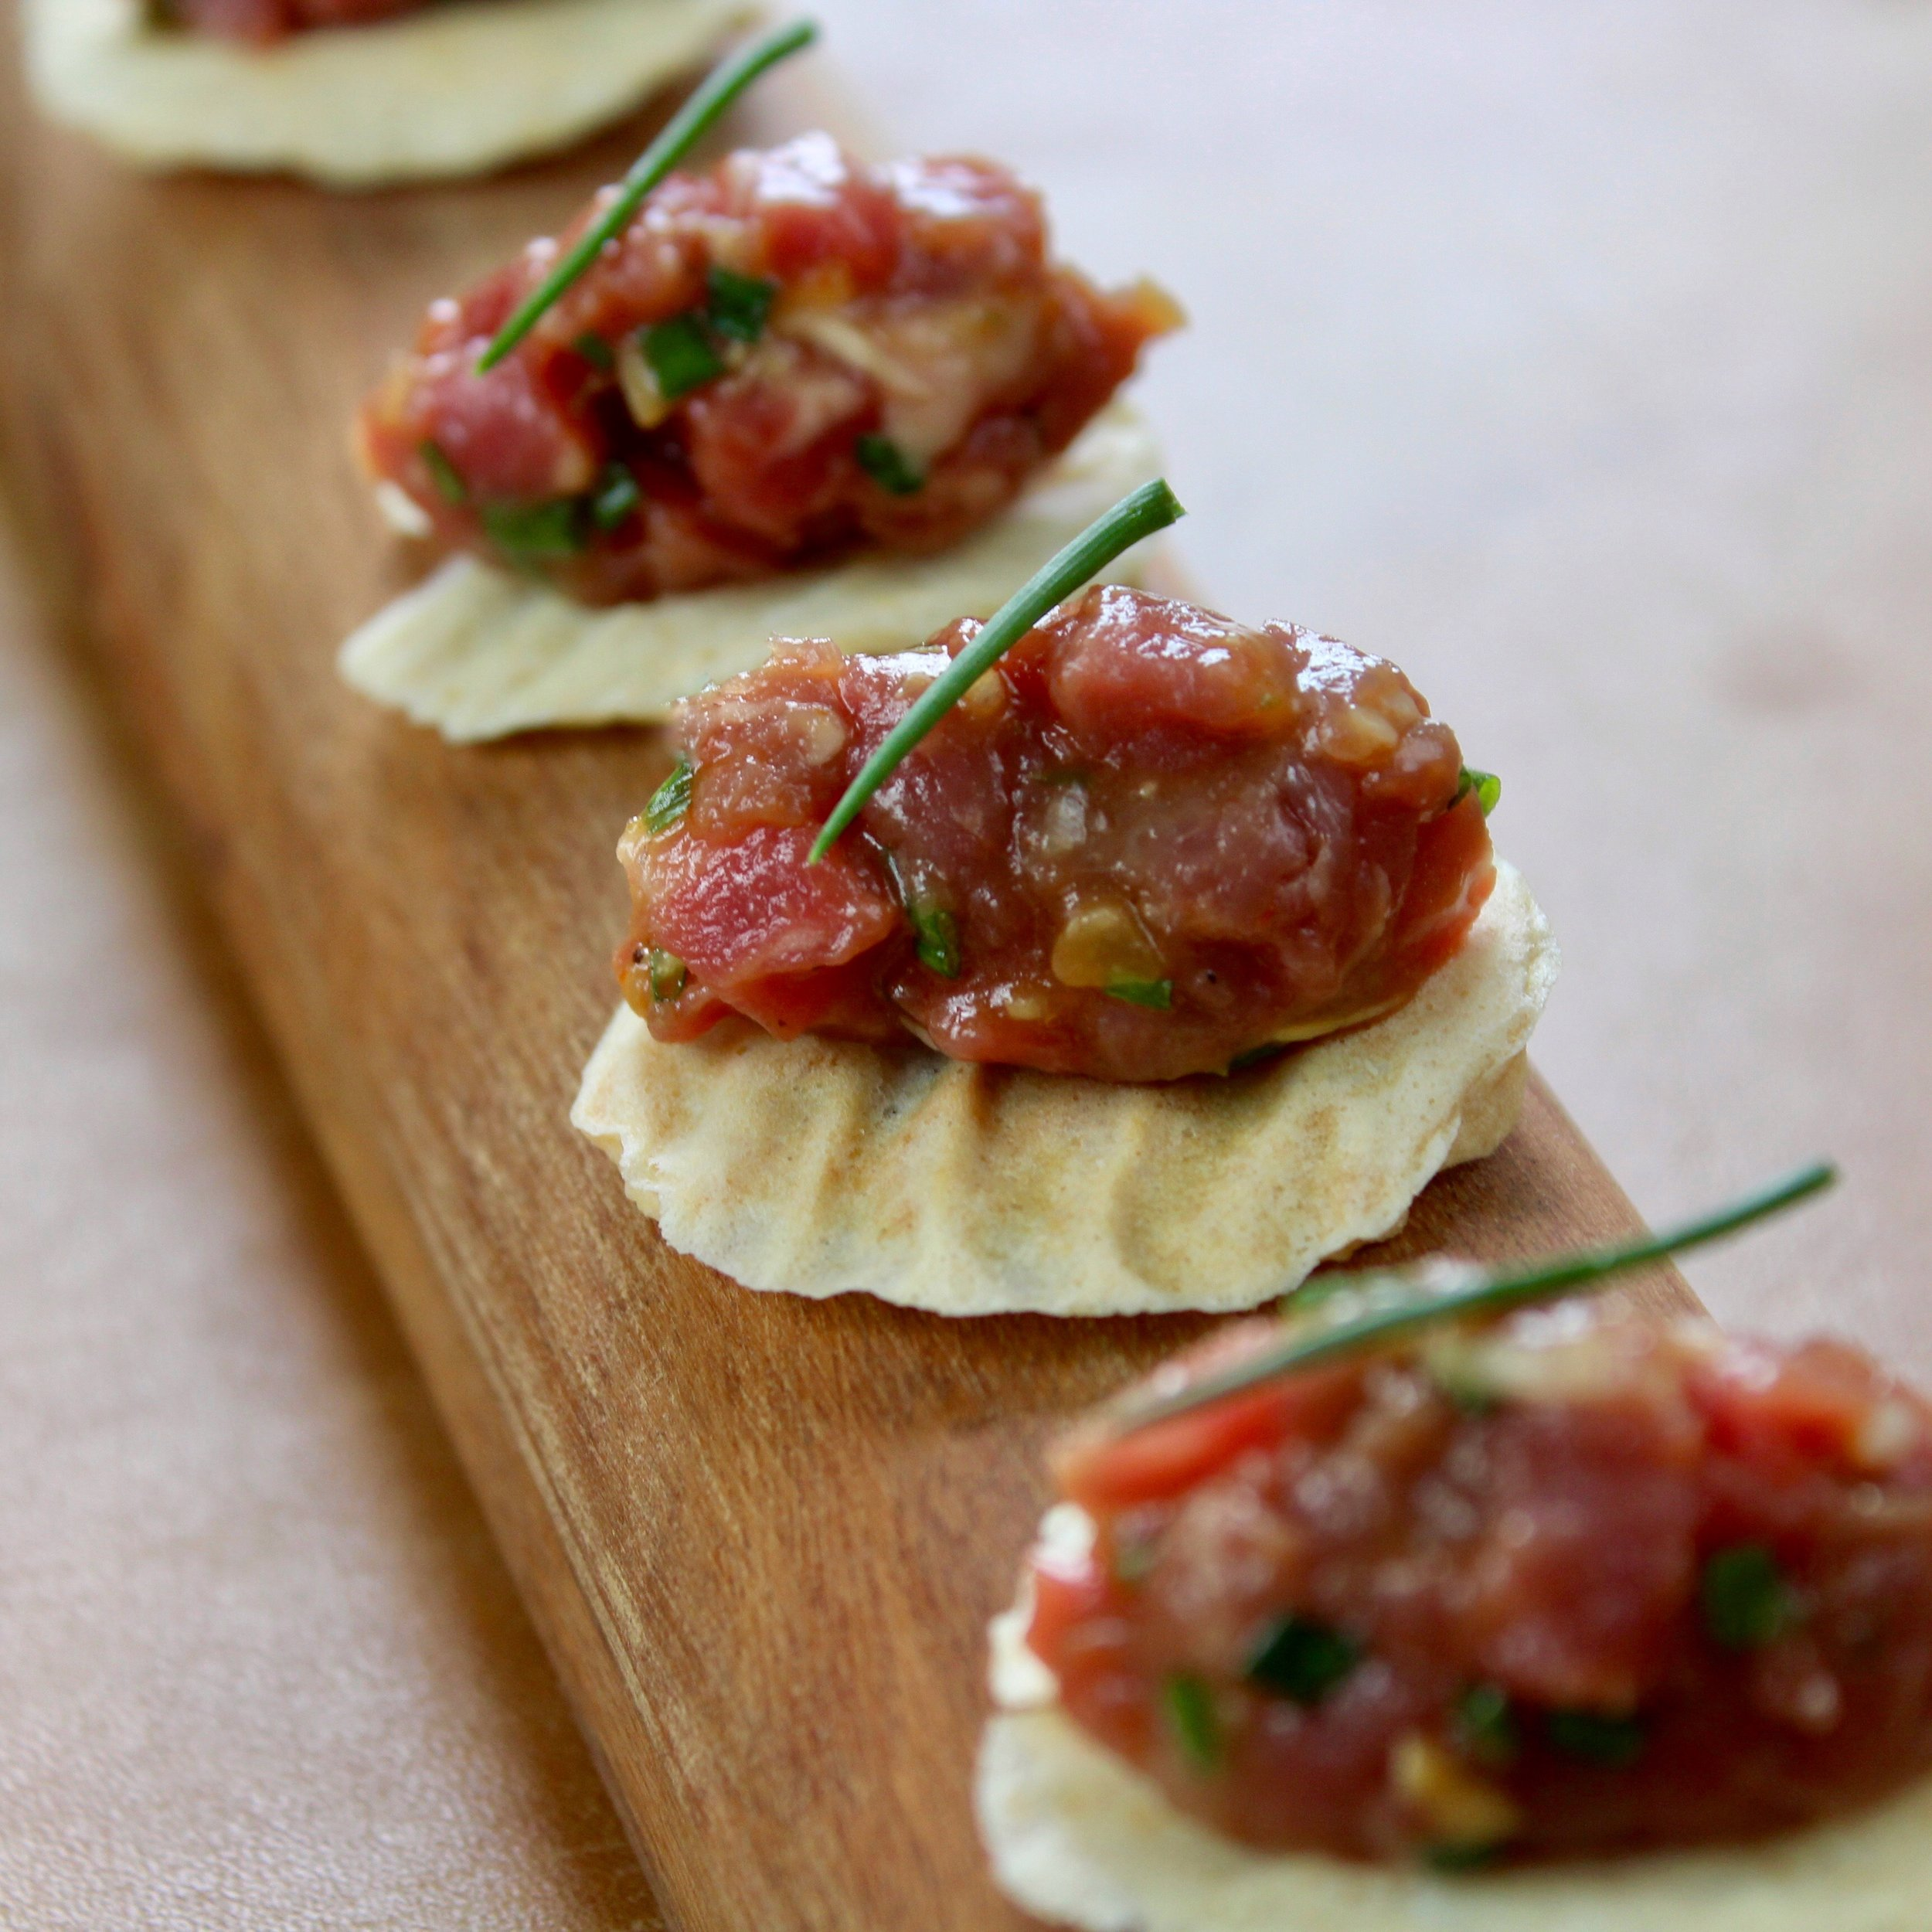 - Steak tartare on a potato wafer